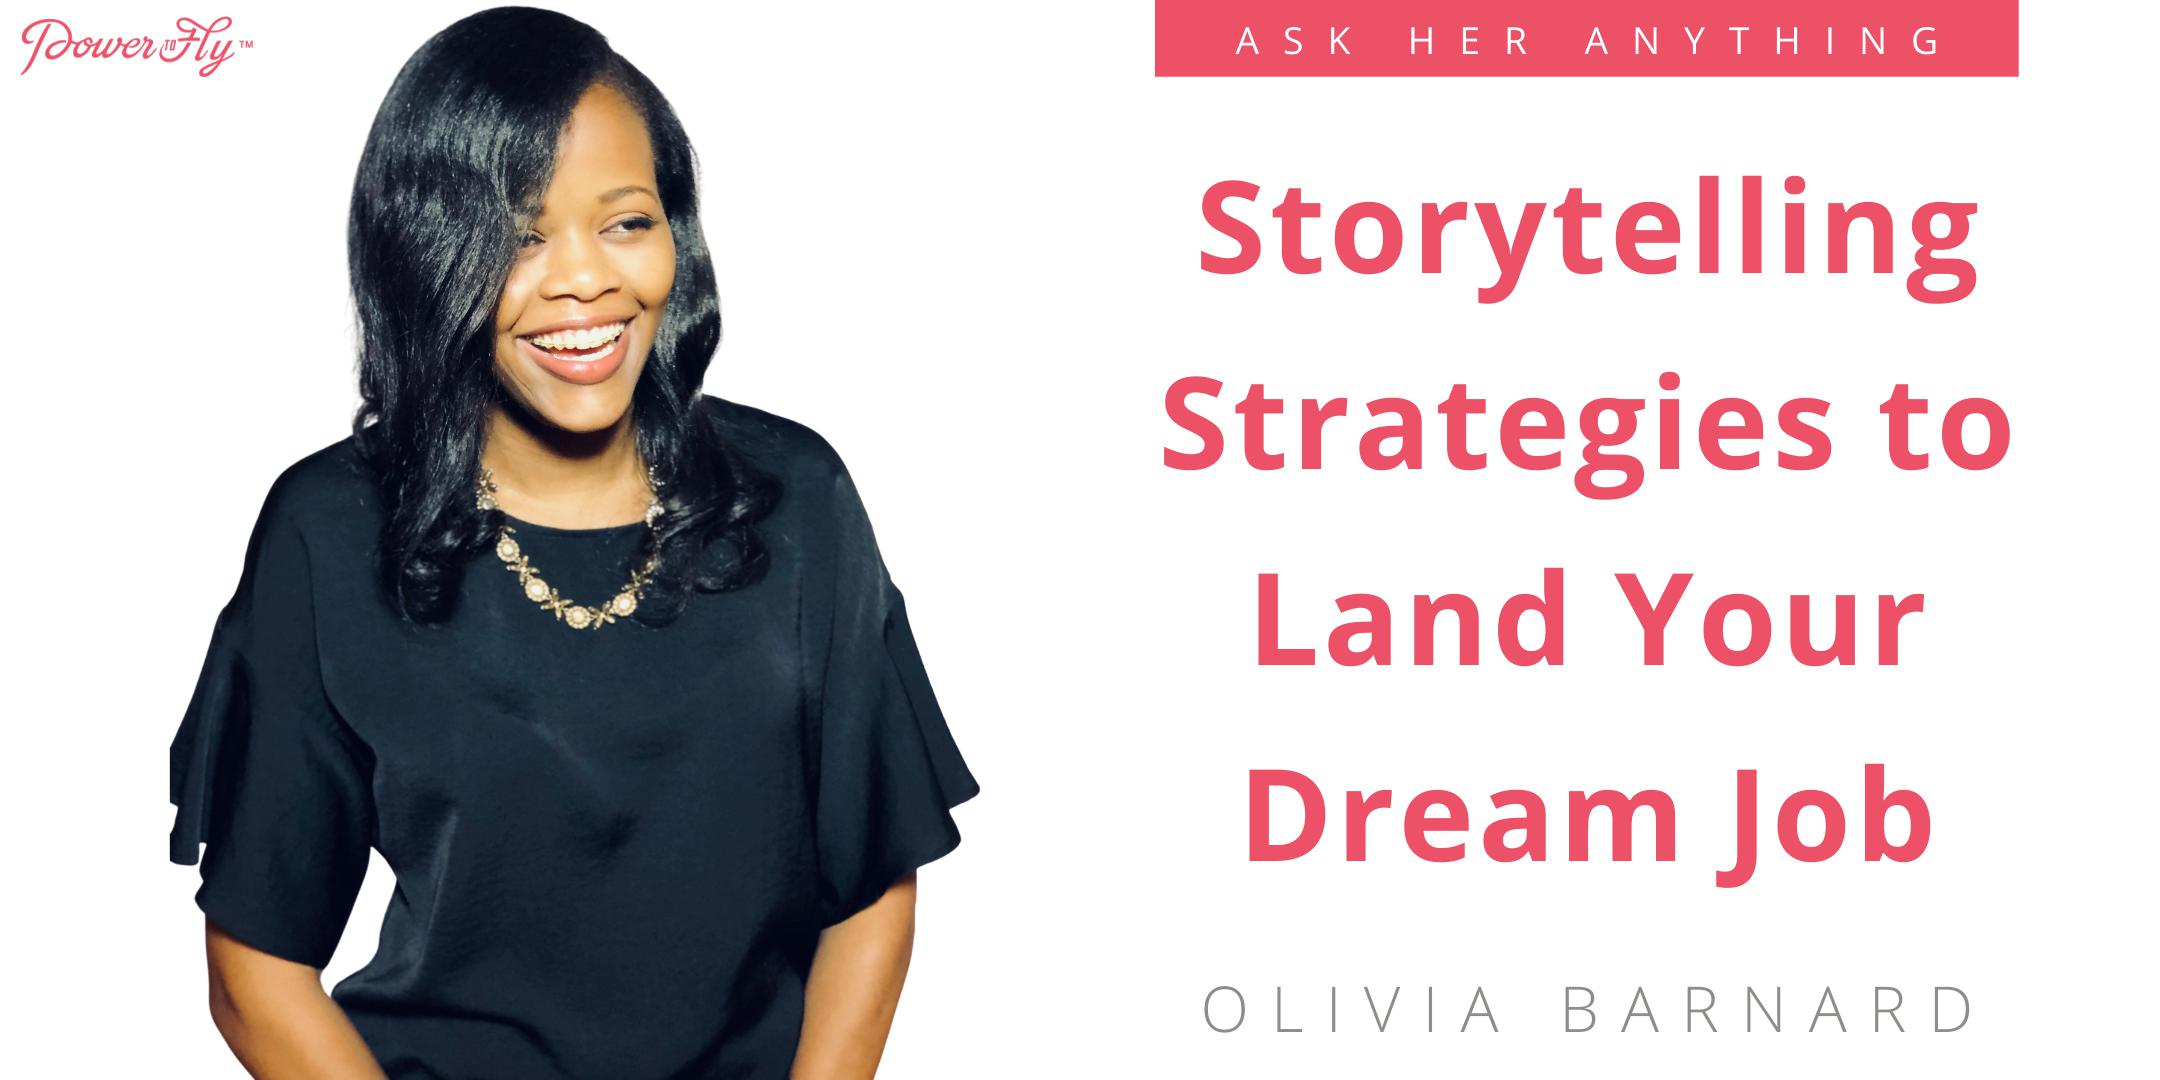 Storytelling Strategies to Land Your Dream Job